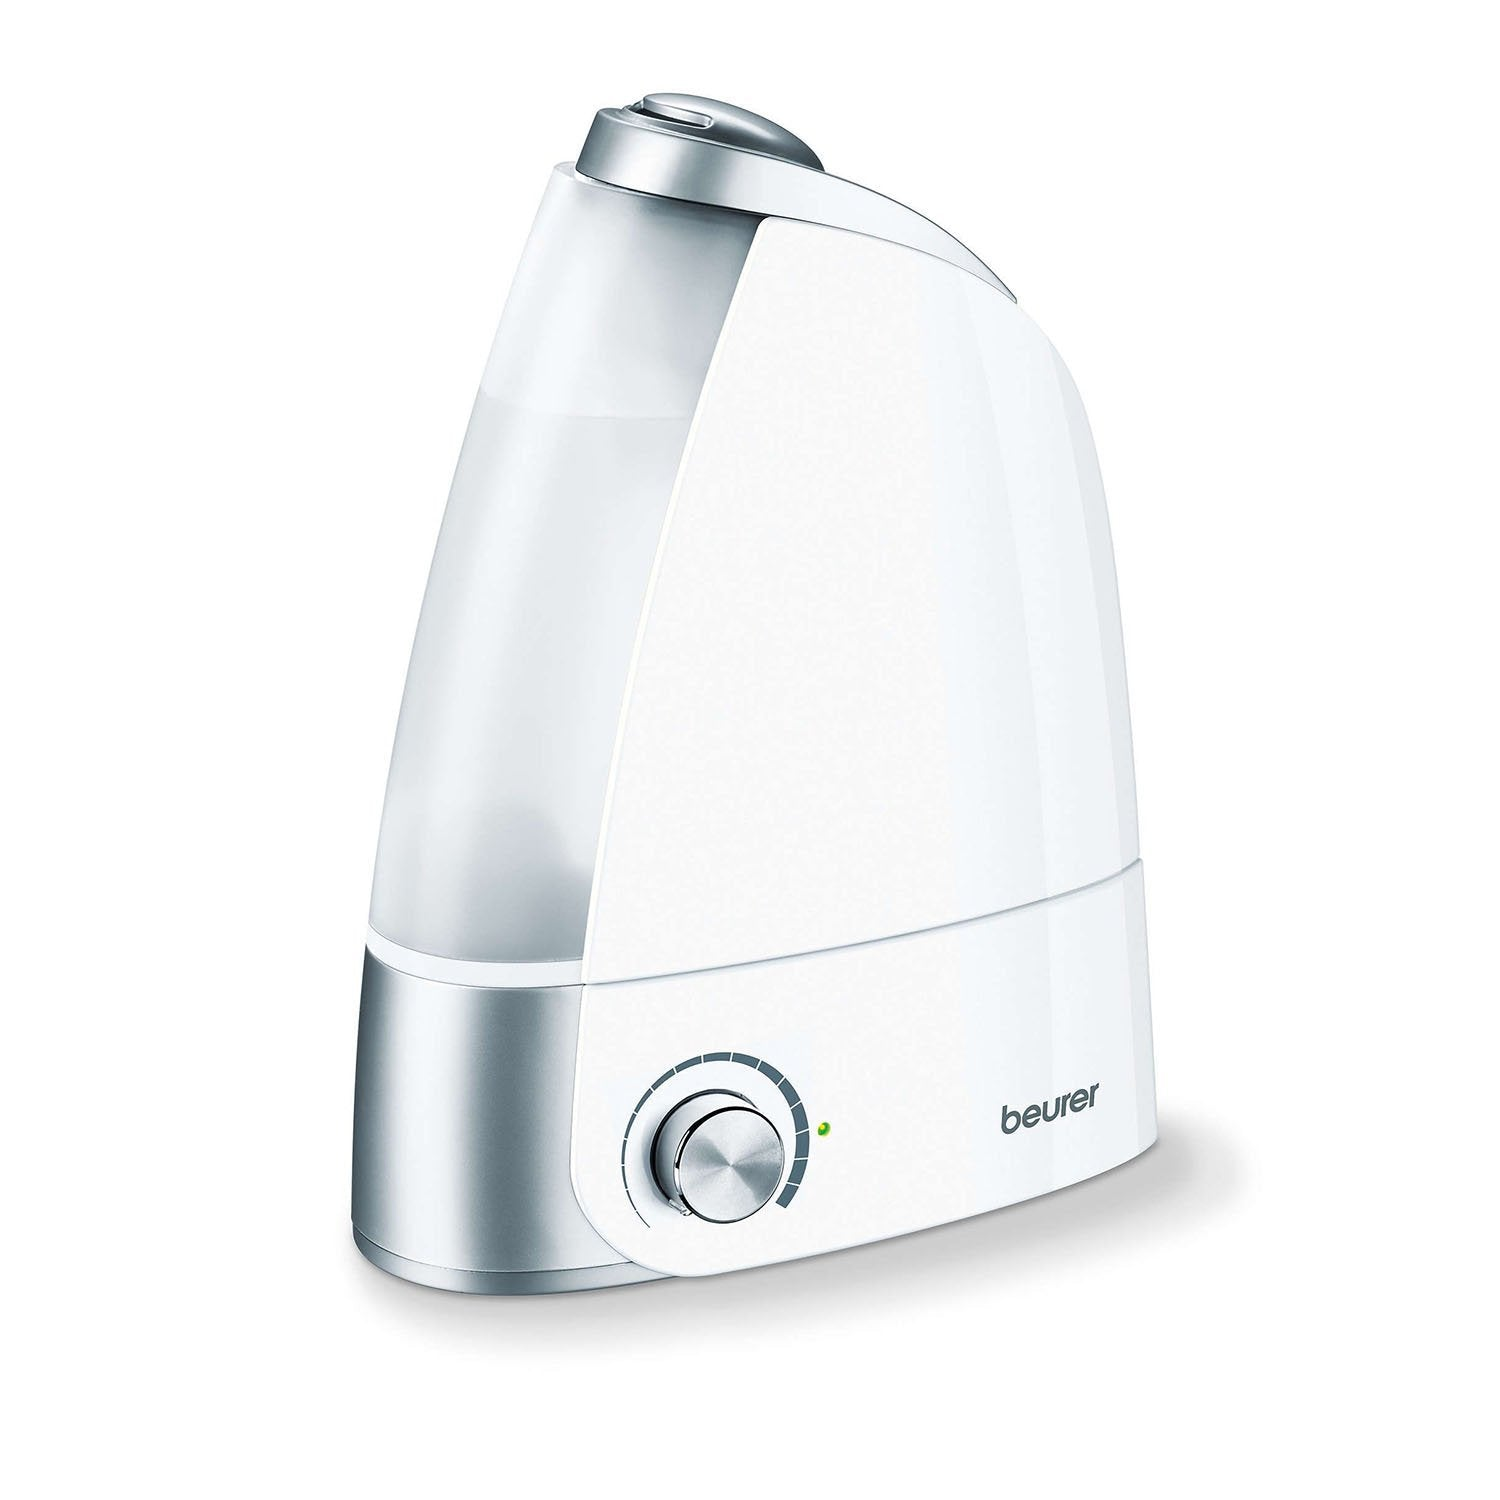 Beurer Ultrasonic Air Humidifier LB 44